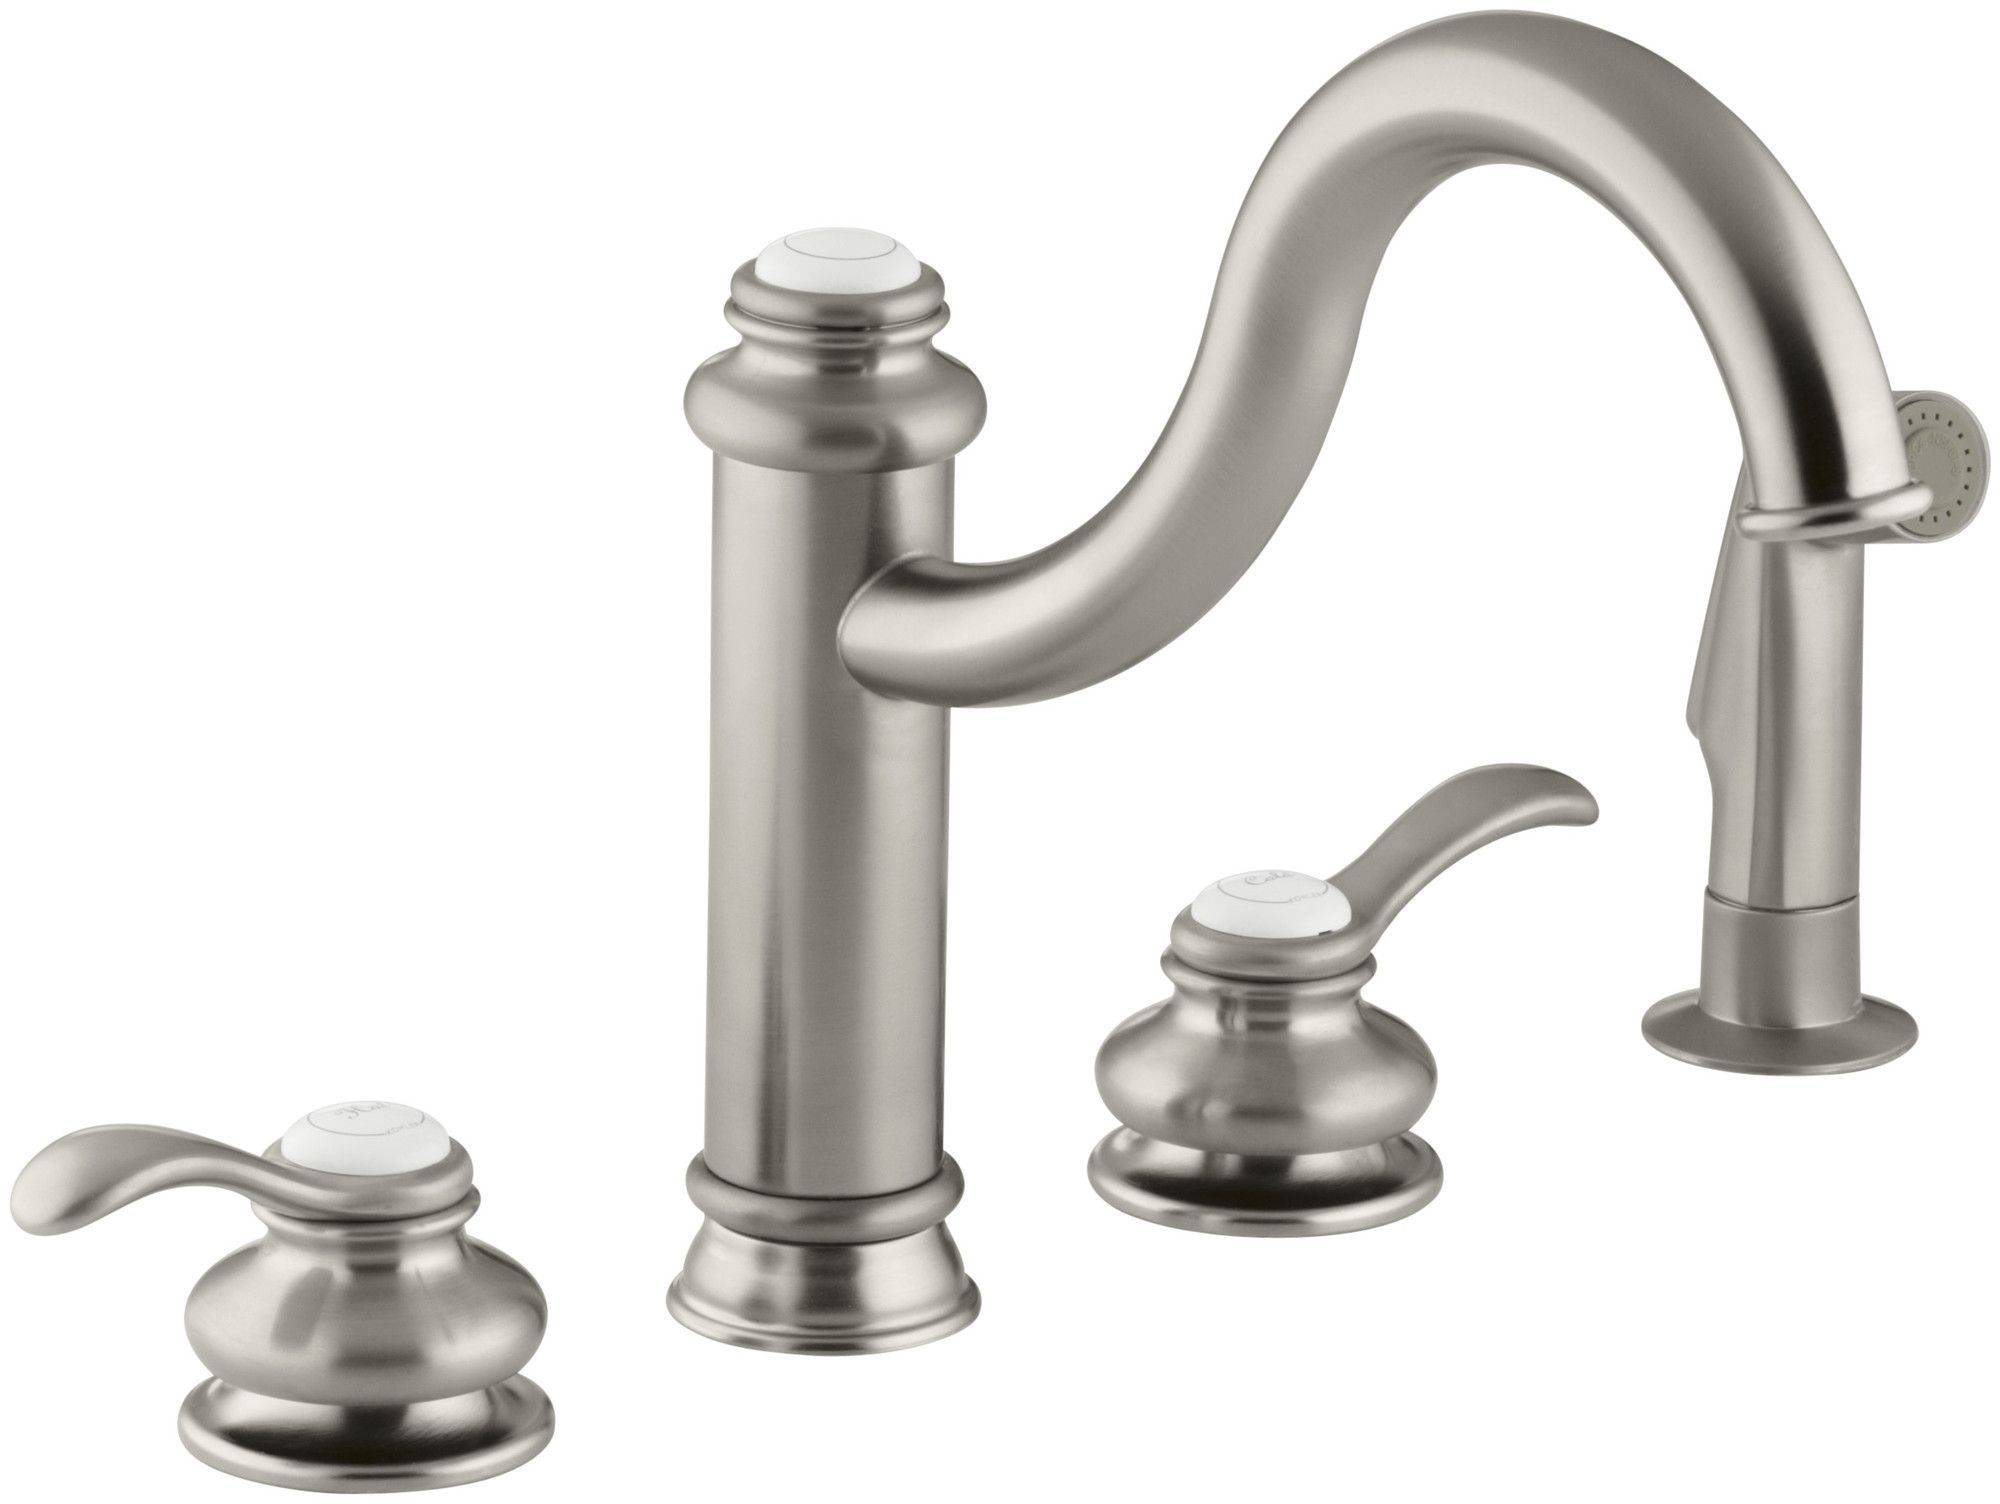 Fairfax 4 Hole Kitchen Sink Faucet With 9 3 8 Spout